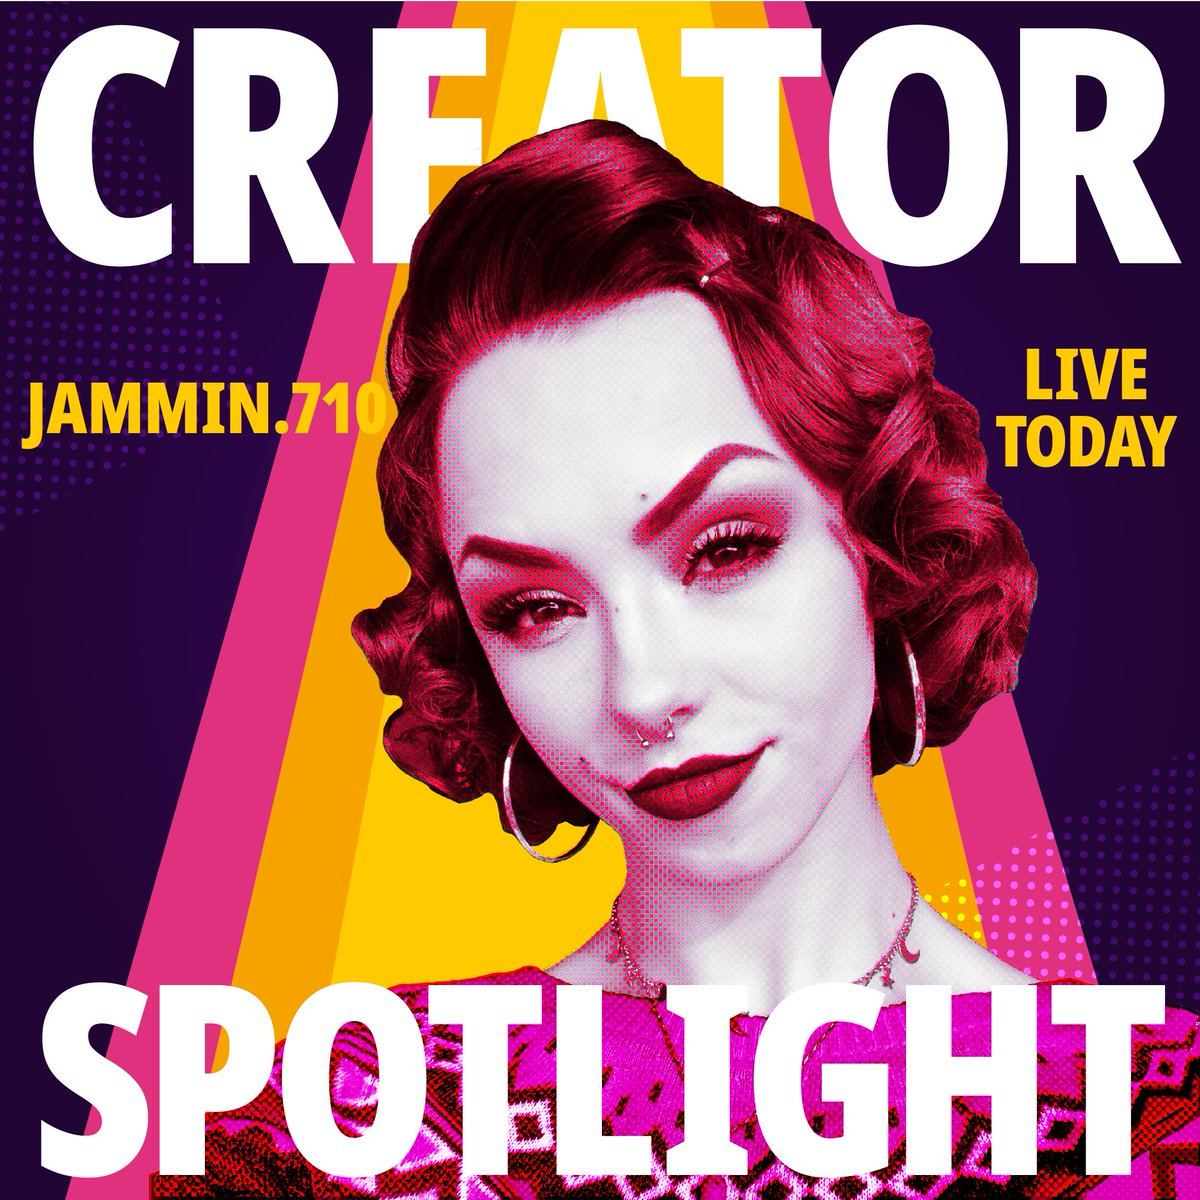 For our Creator of the Week, we are excited to announce for it to be Jammin.710💜beauty queen👑 Known for her creative makeup looks and style! Catch her on IG live tonight with President @MakaylaWGVS🙎🏻‍♀️ at 6 PM. #InstagramLive #makeup #beautytips